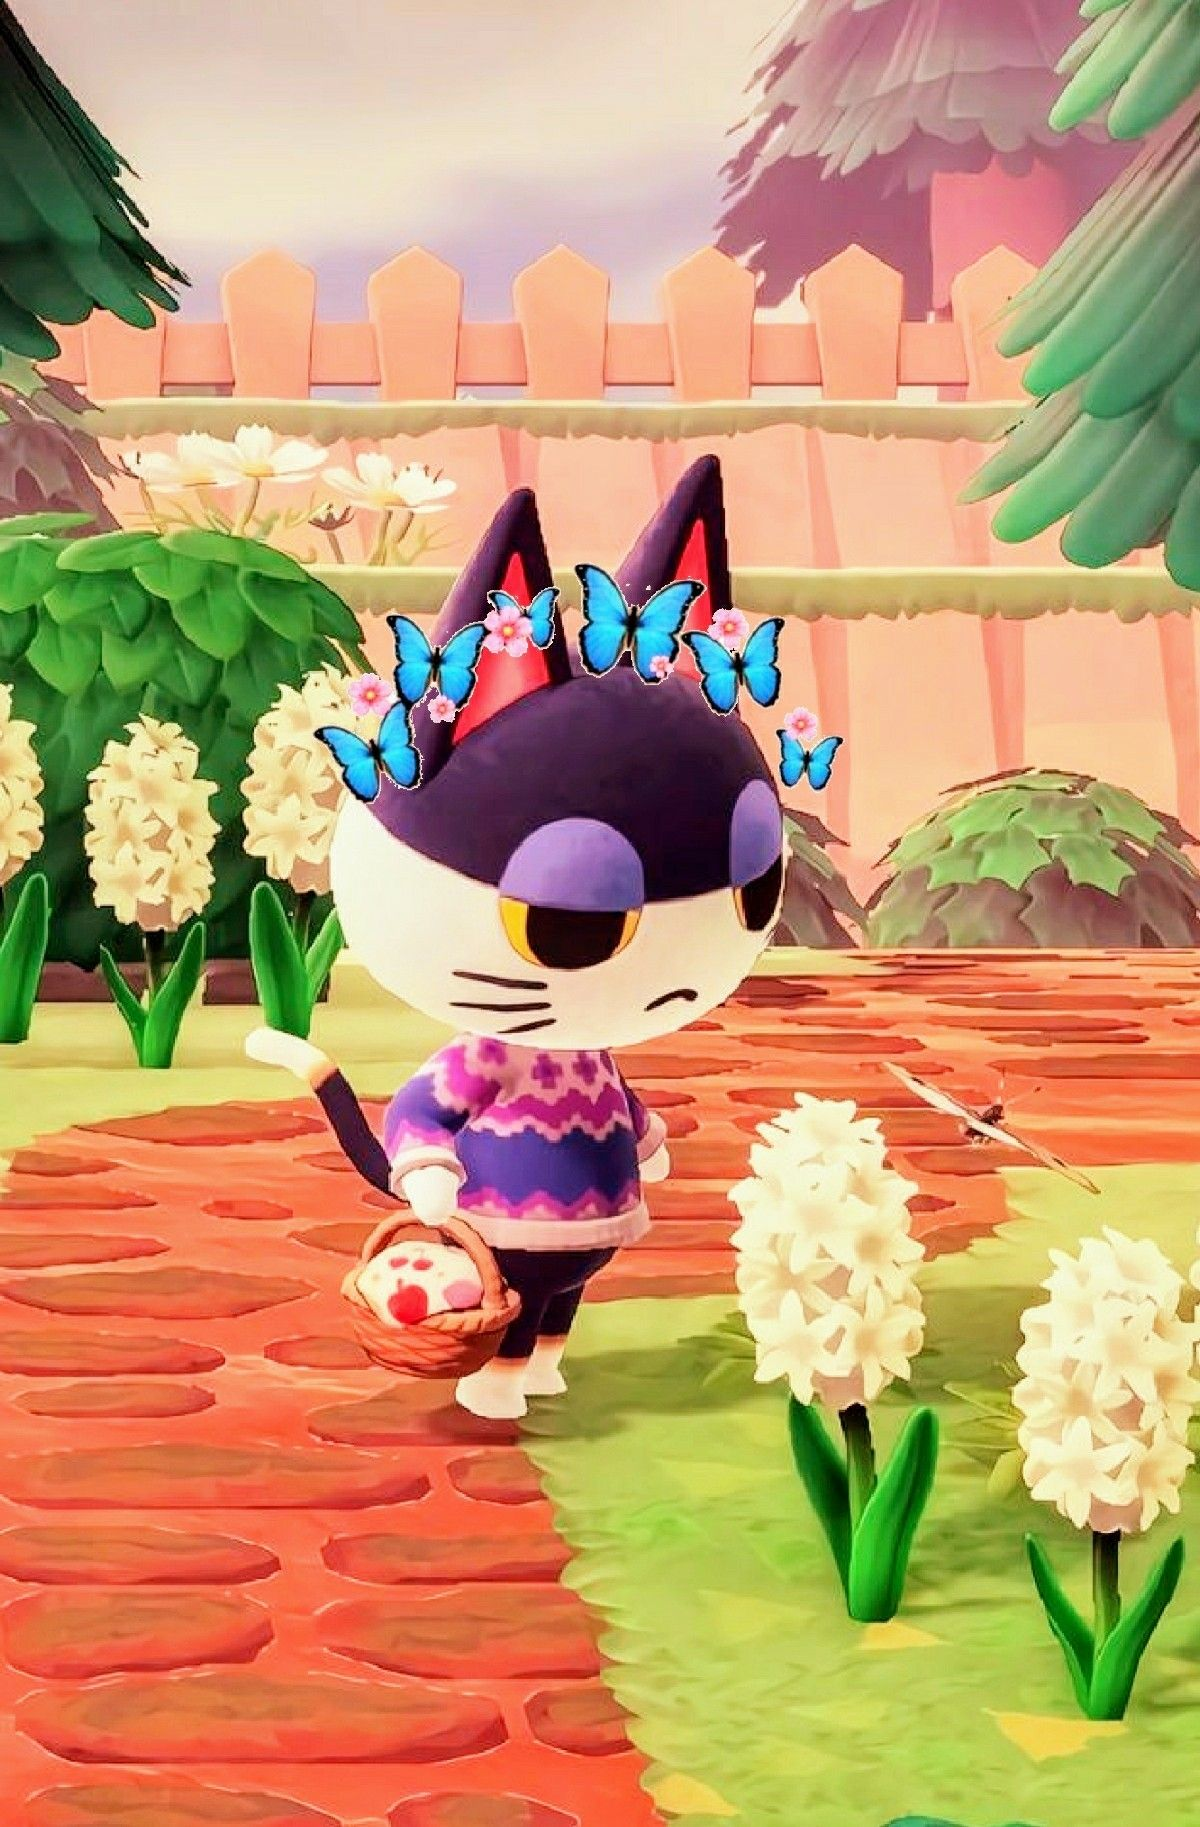 18+ Puddles animal crossing new horizons ideas